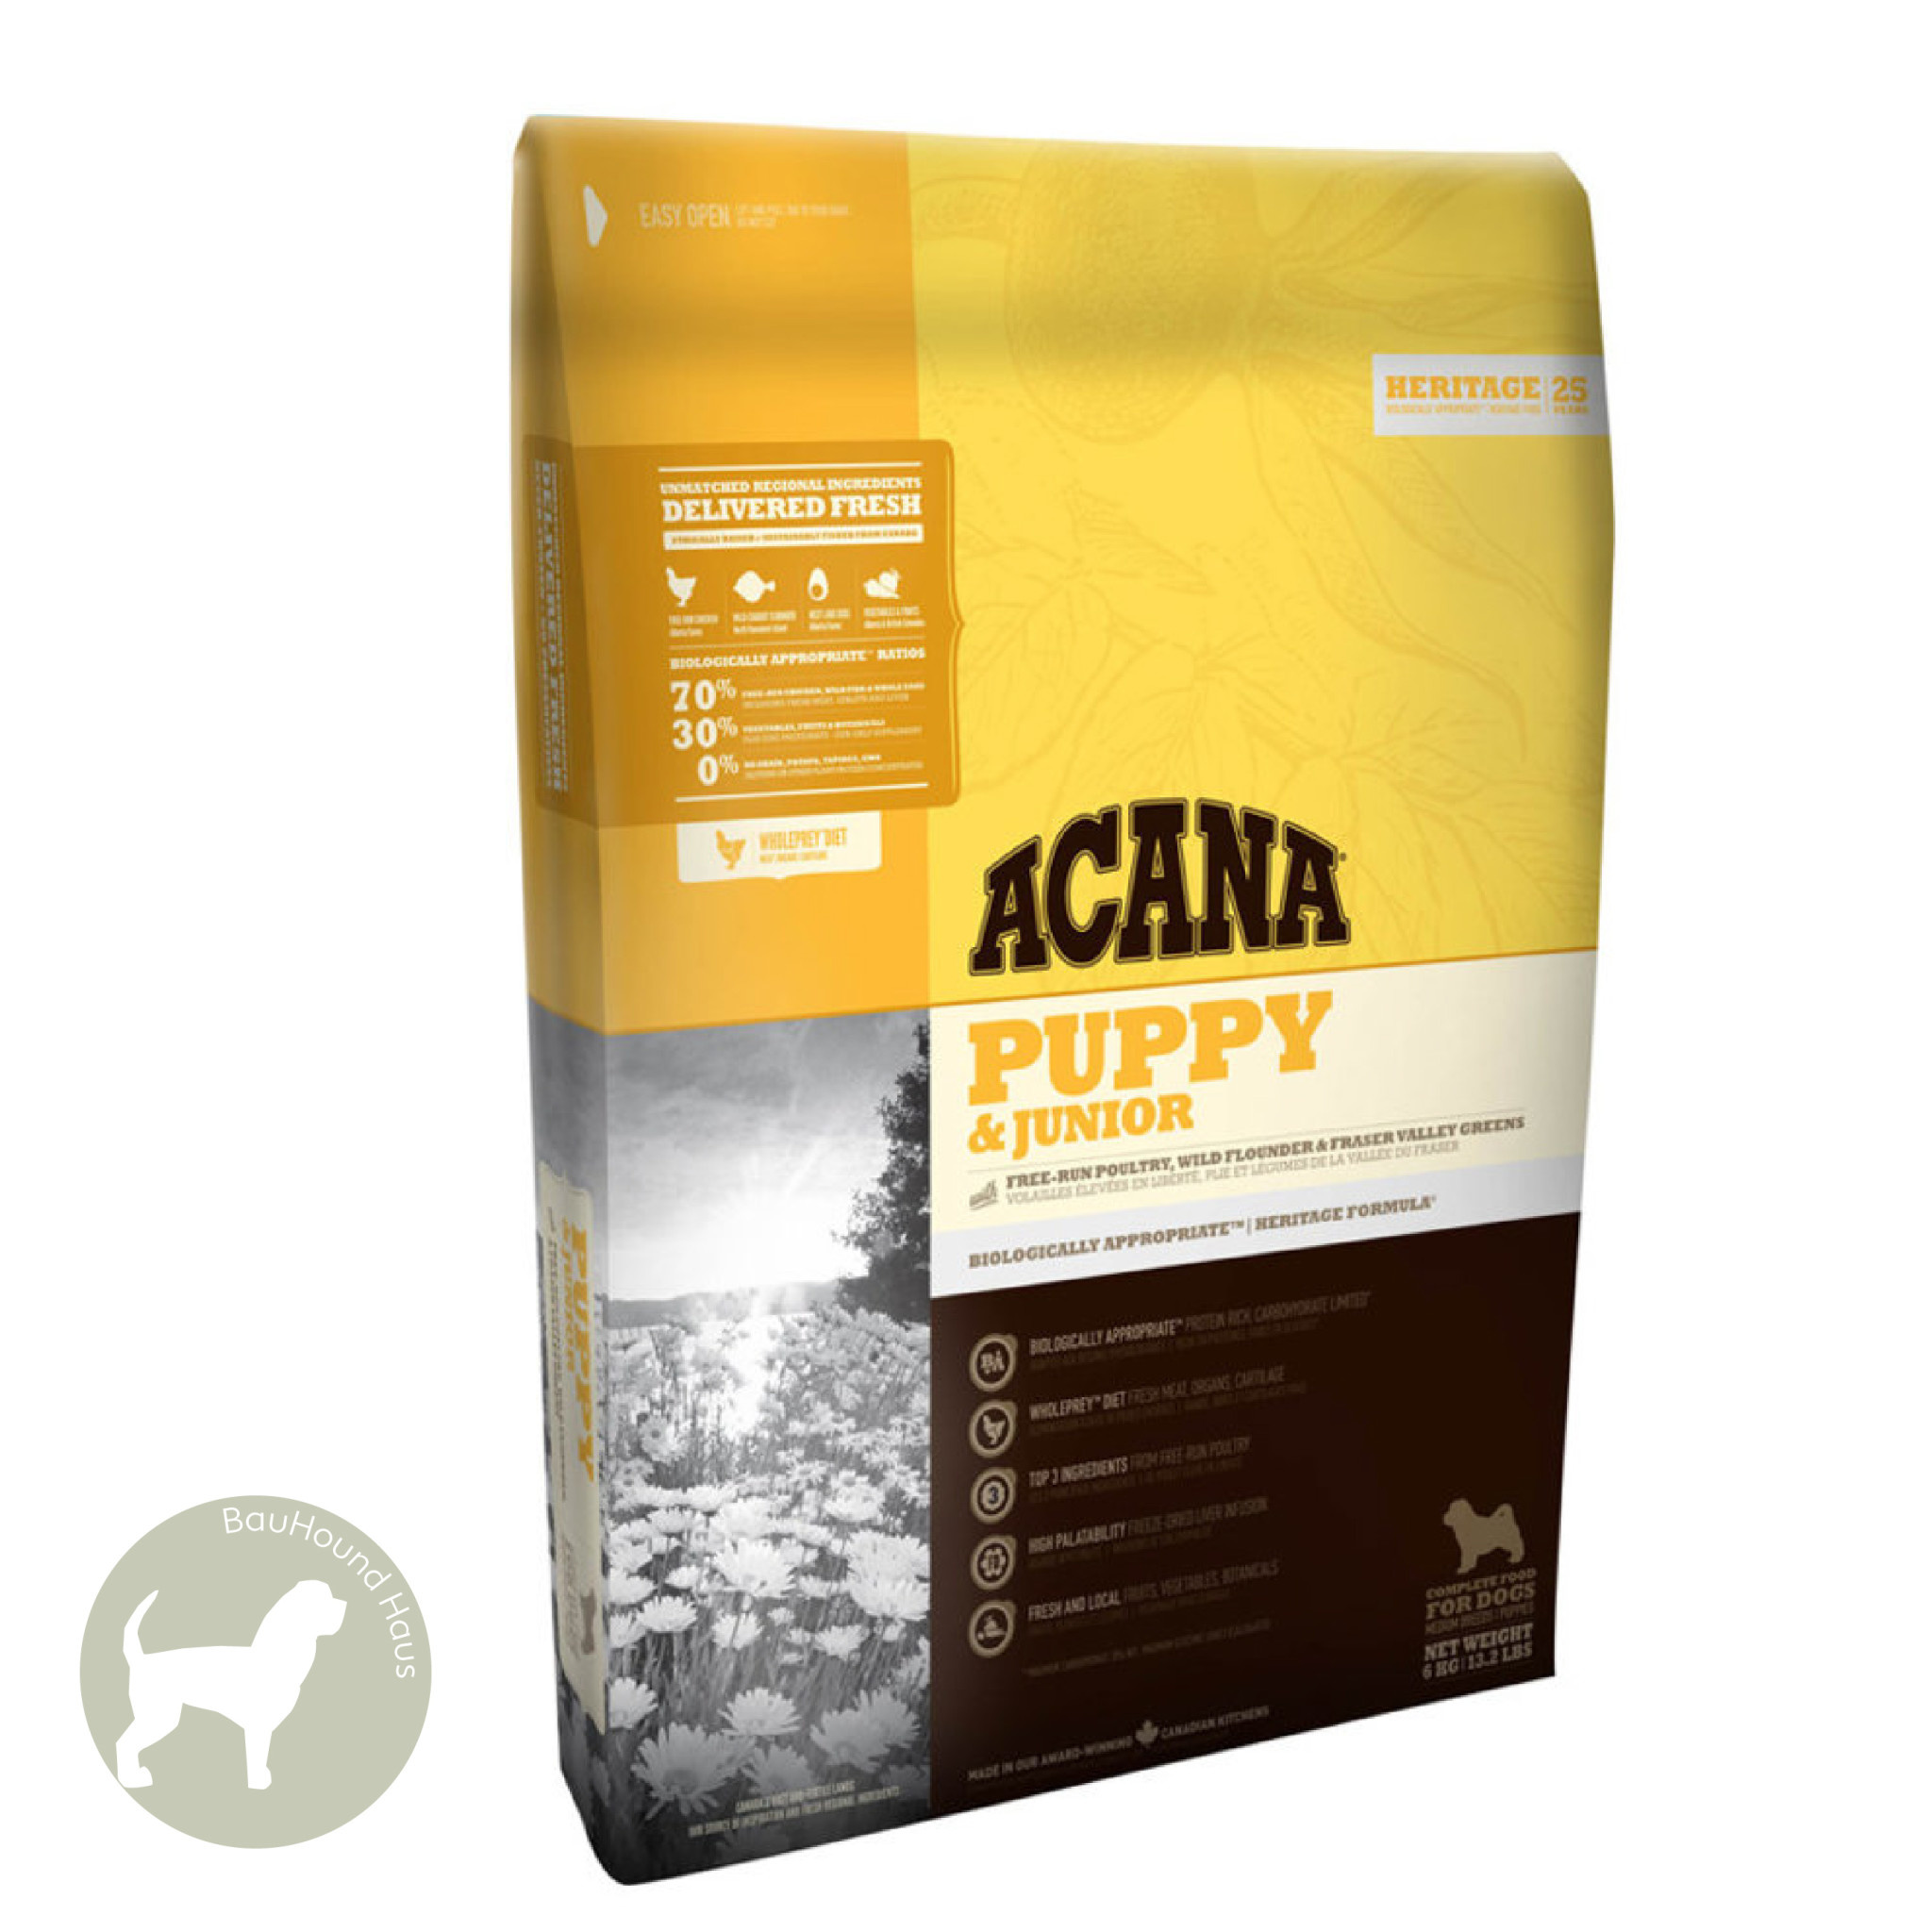 Acana Acana HERITAGE Puppy & Junior Kibble, 11.4kg